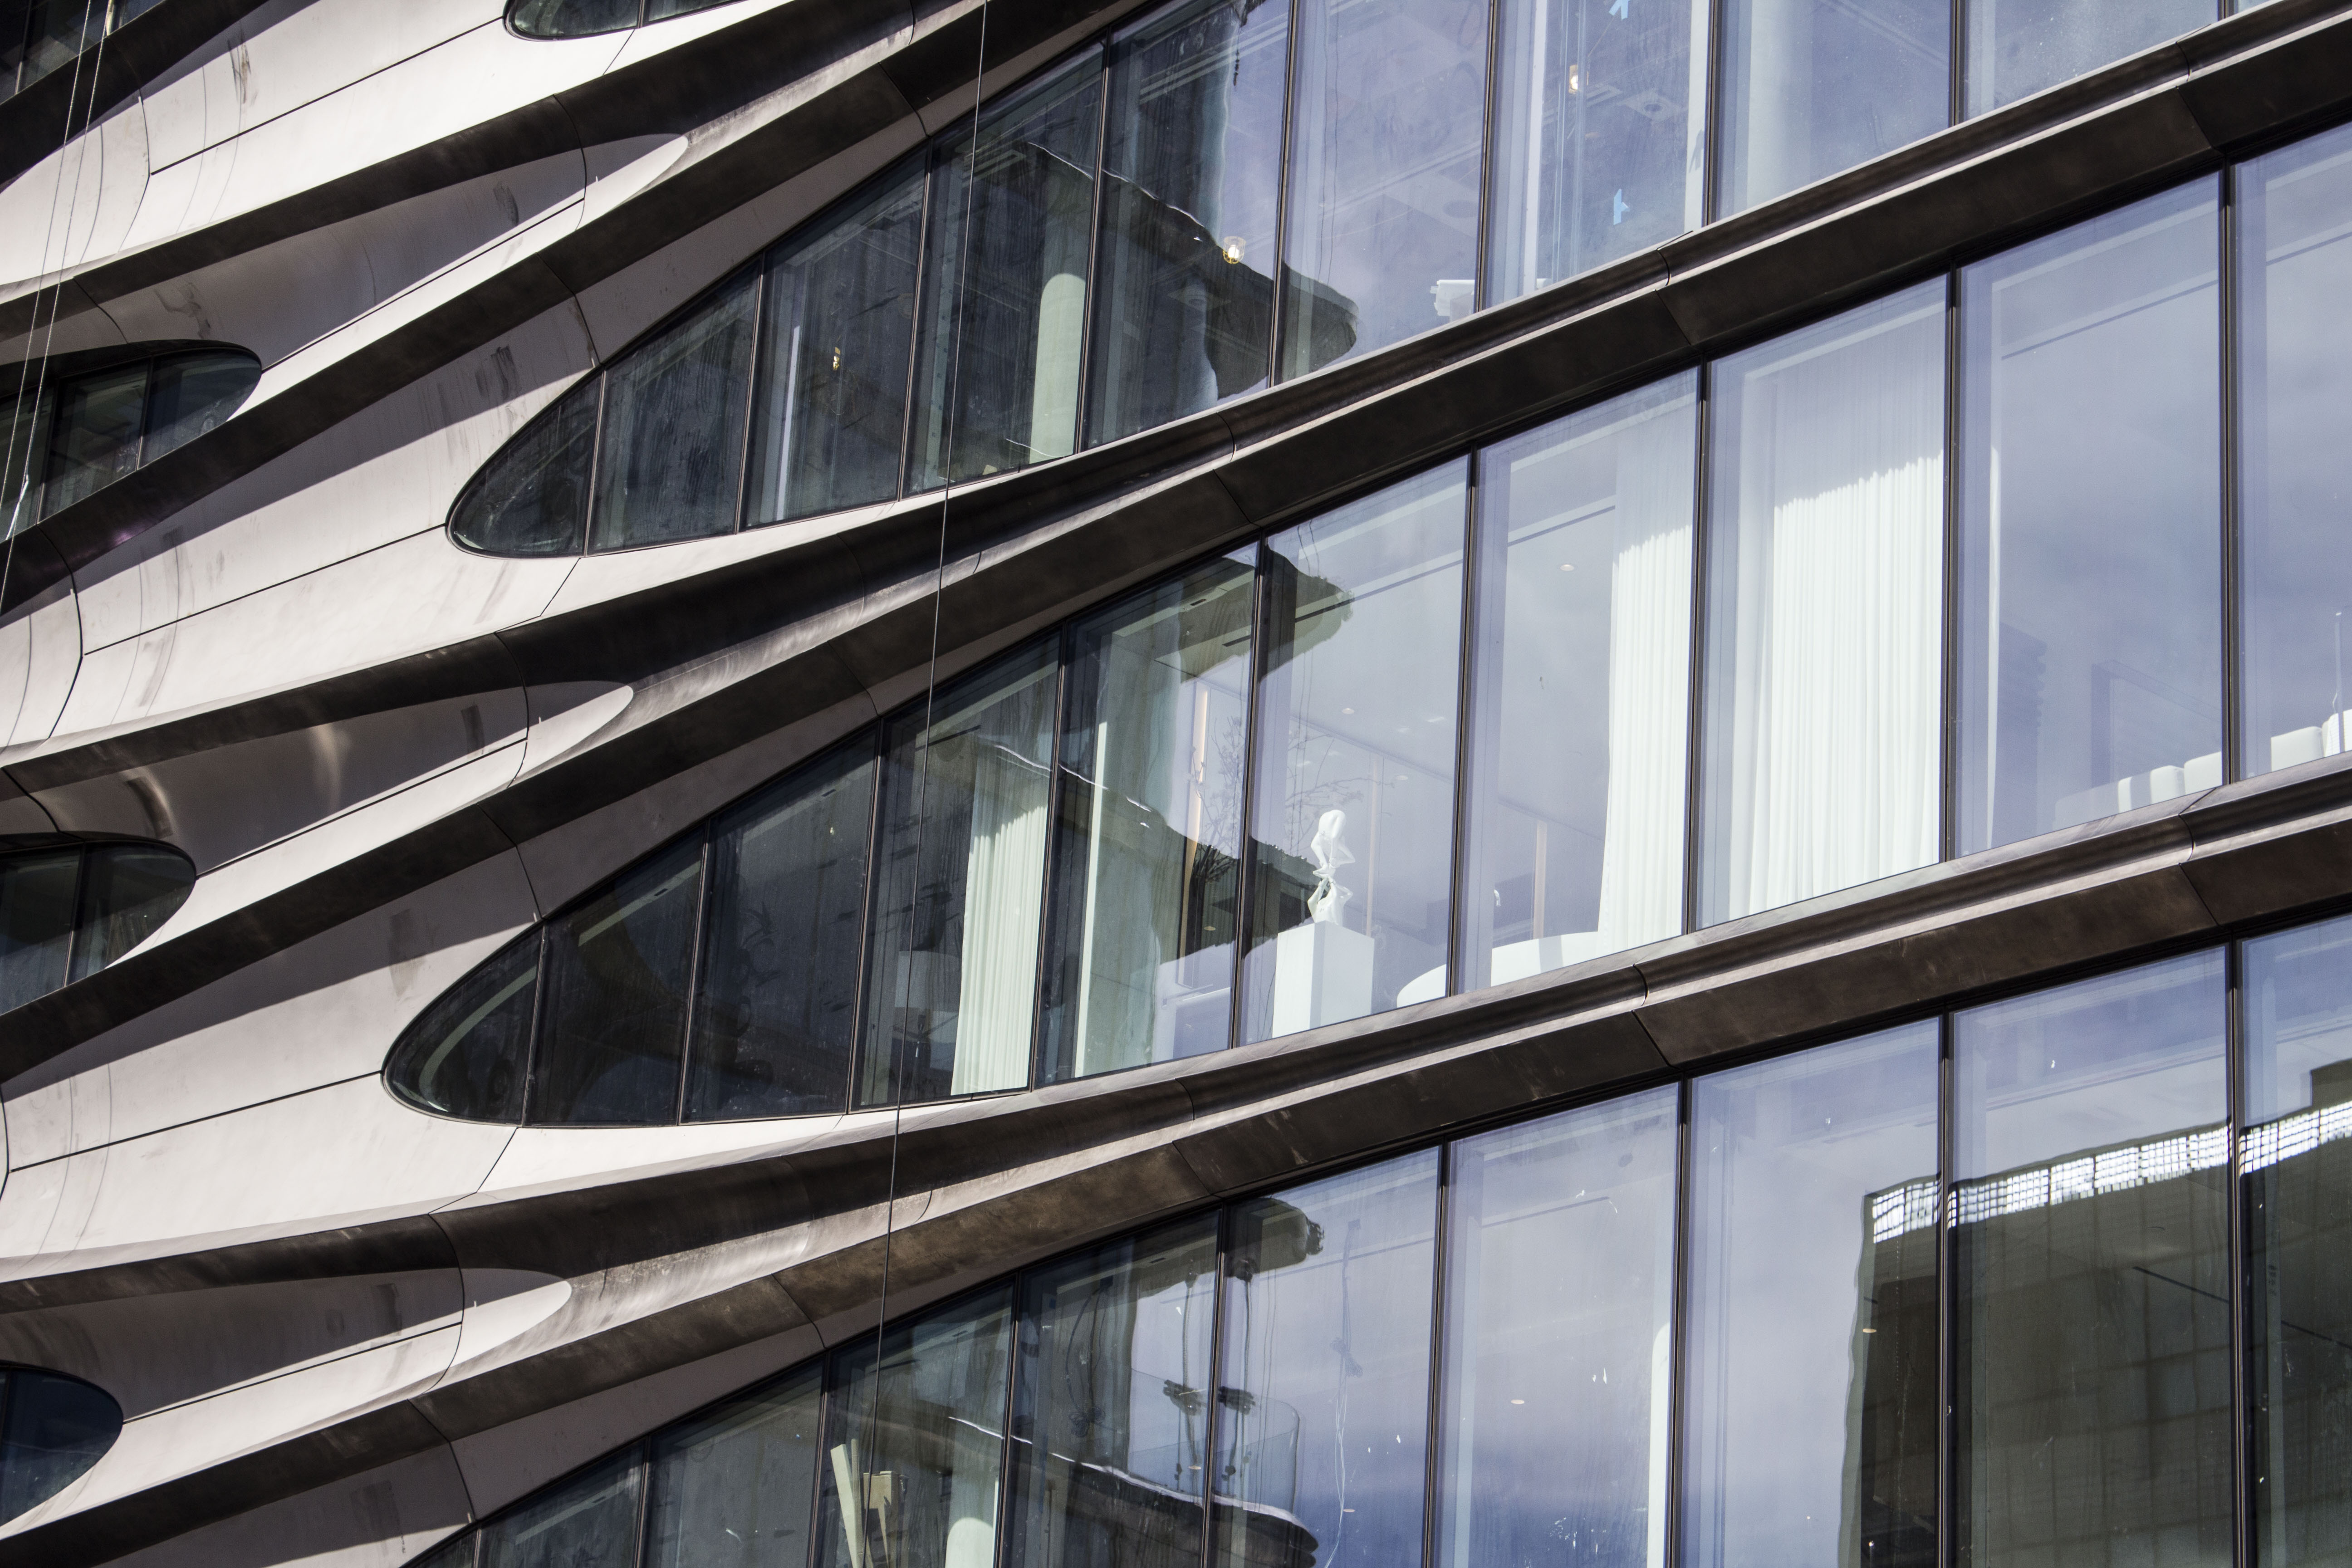 Zaha Hadid S High Line Building Great Design Or Life In A